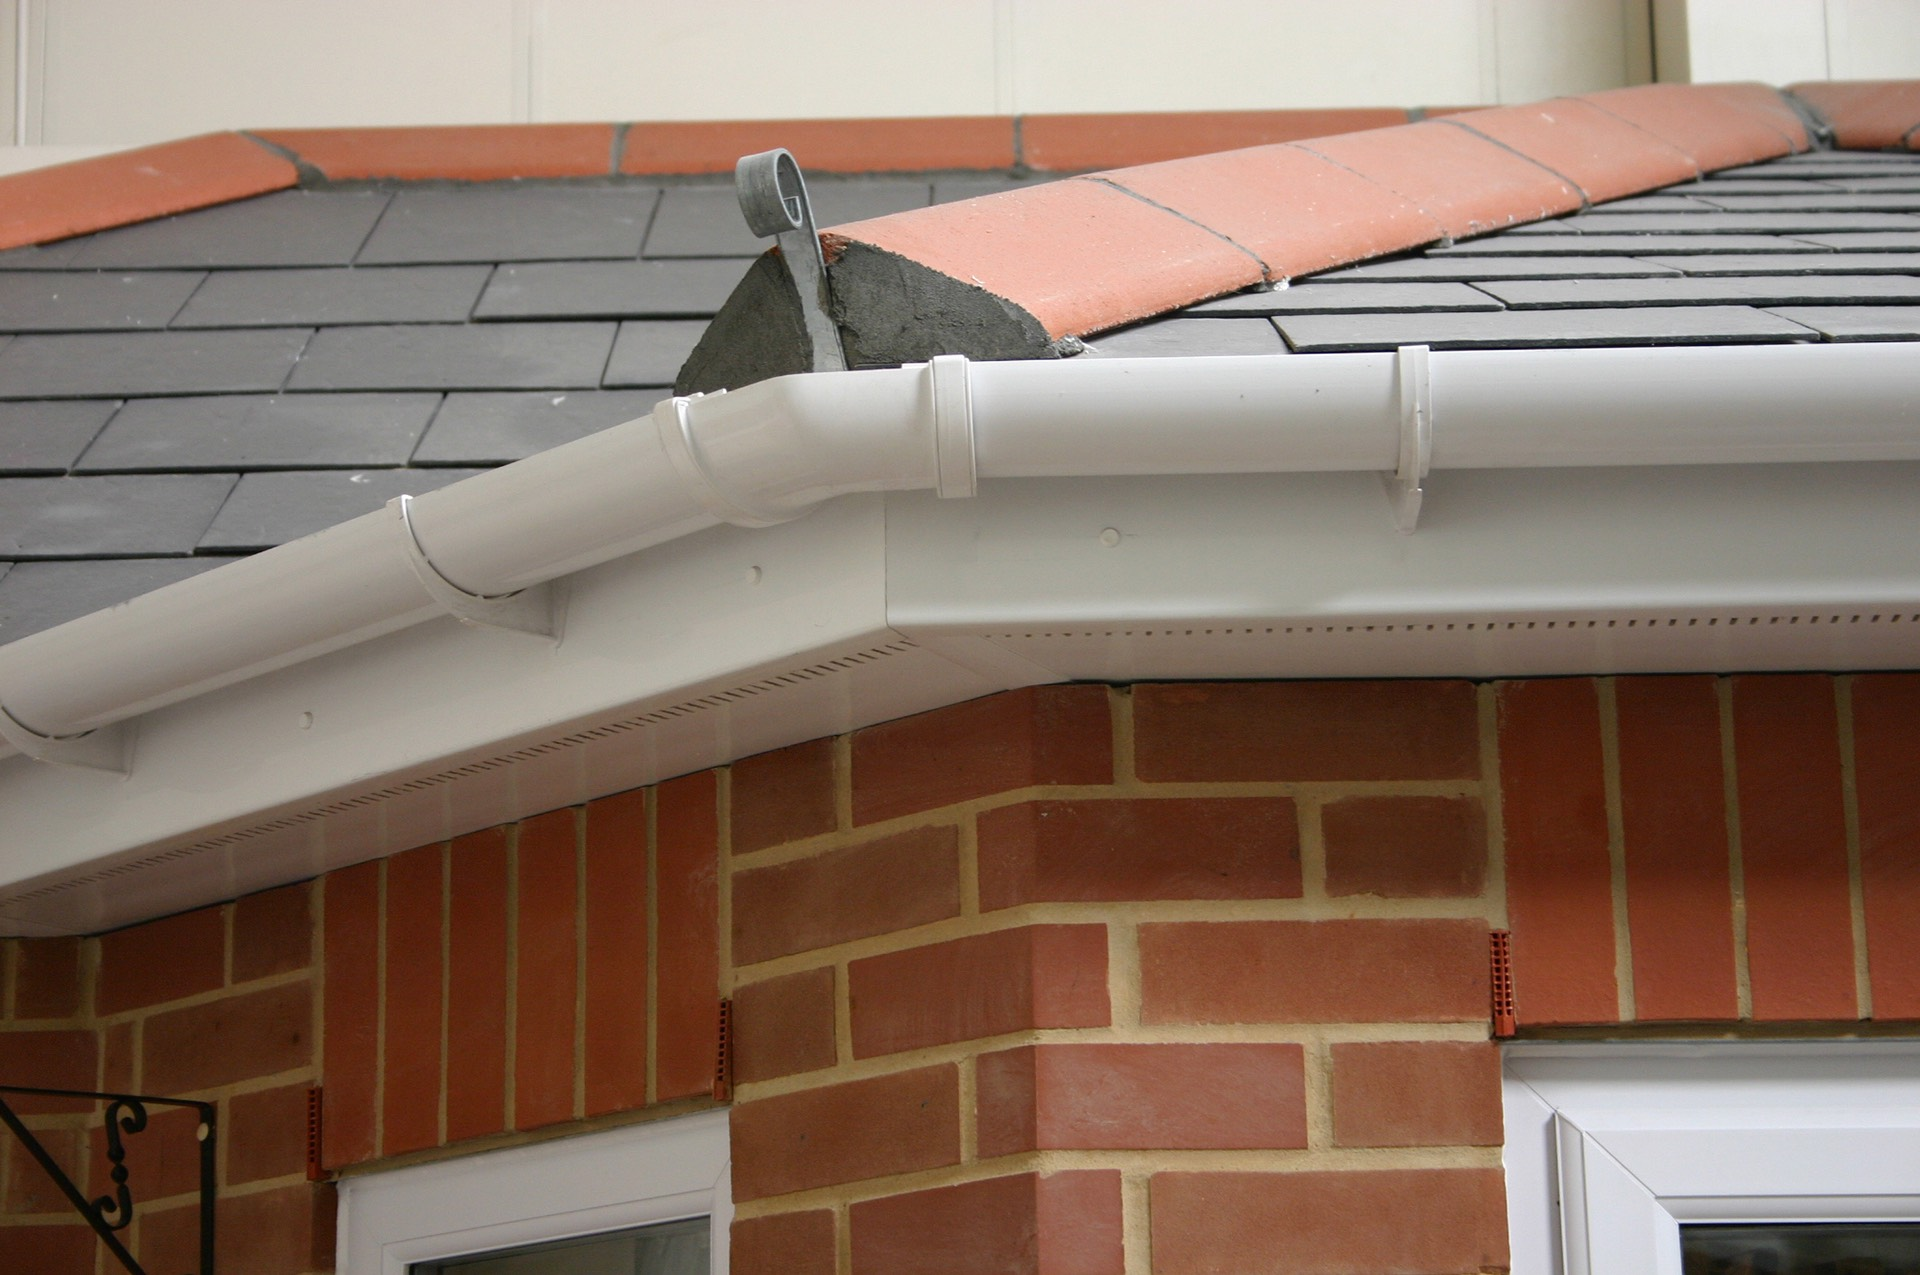 Reasons to Improve the Roofline of my Home